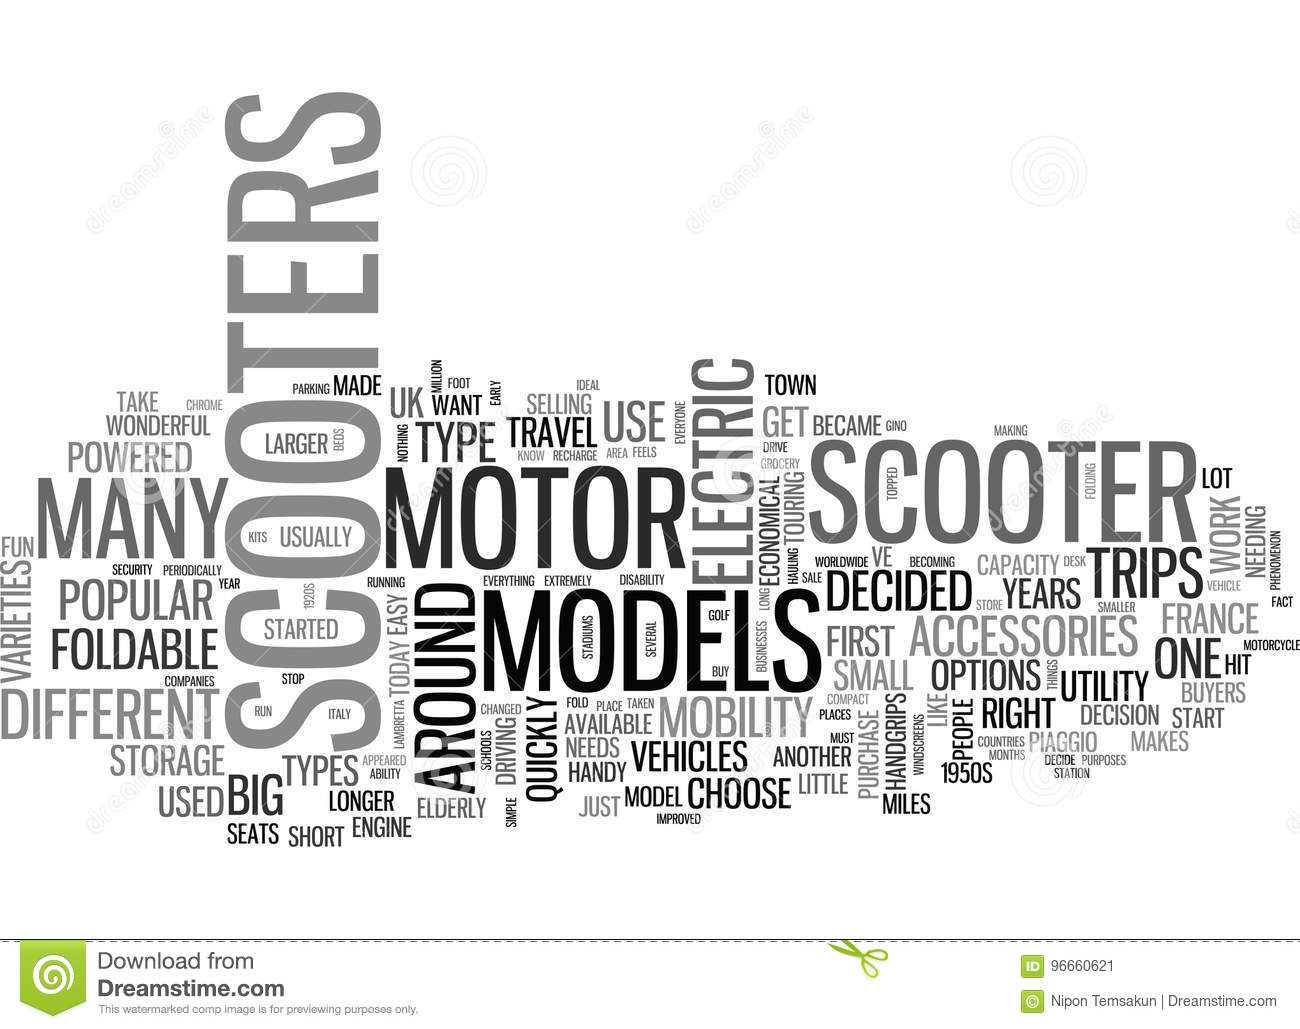 A Buyers Guide To Motor Scooters Word Cloud